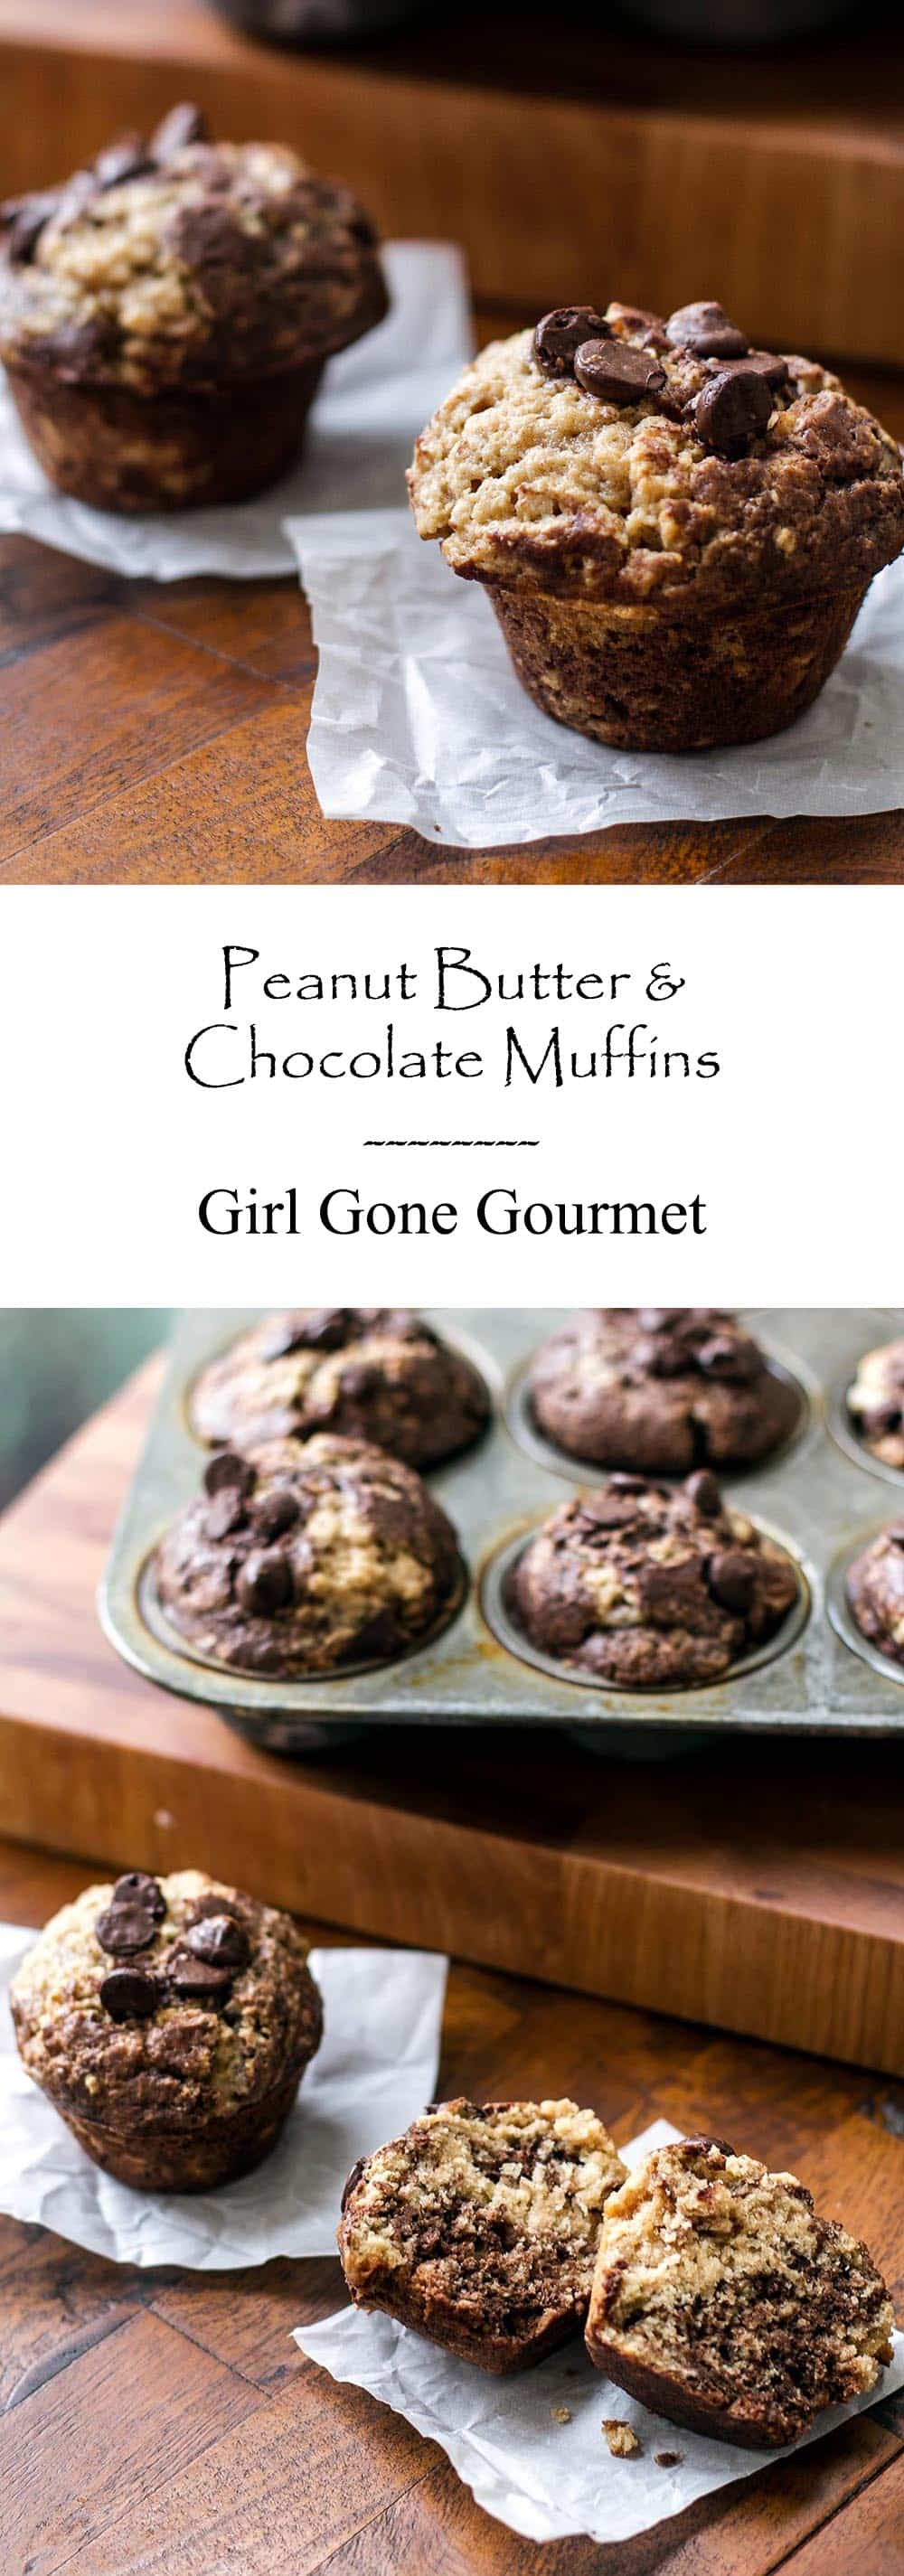 Peanut Butter and Chocolate Muffins | Girl Gone Gourmet